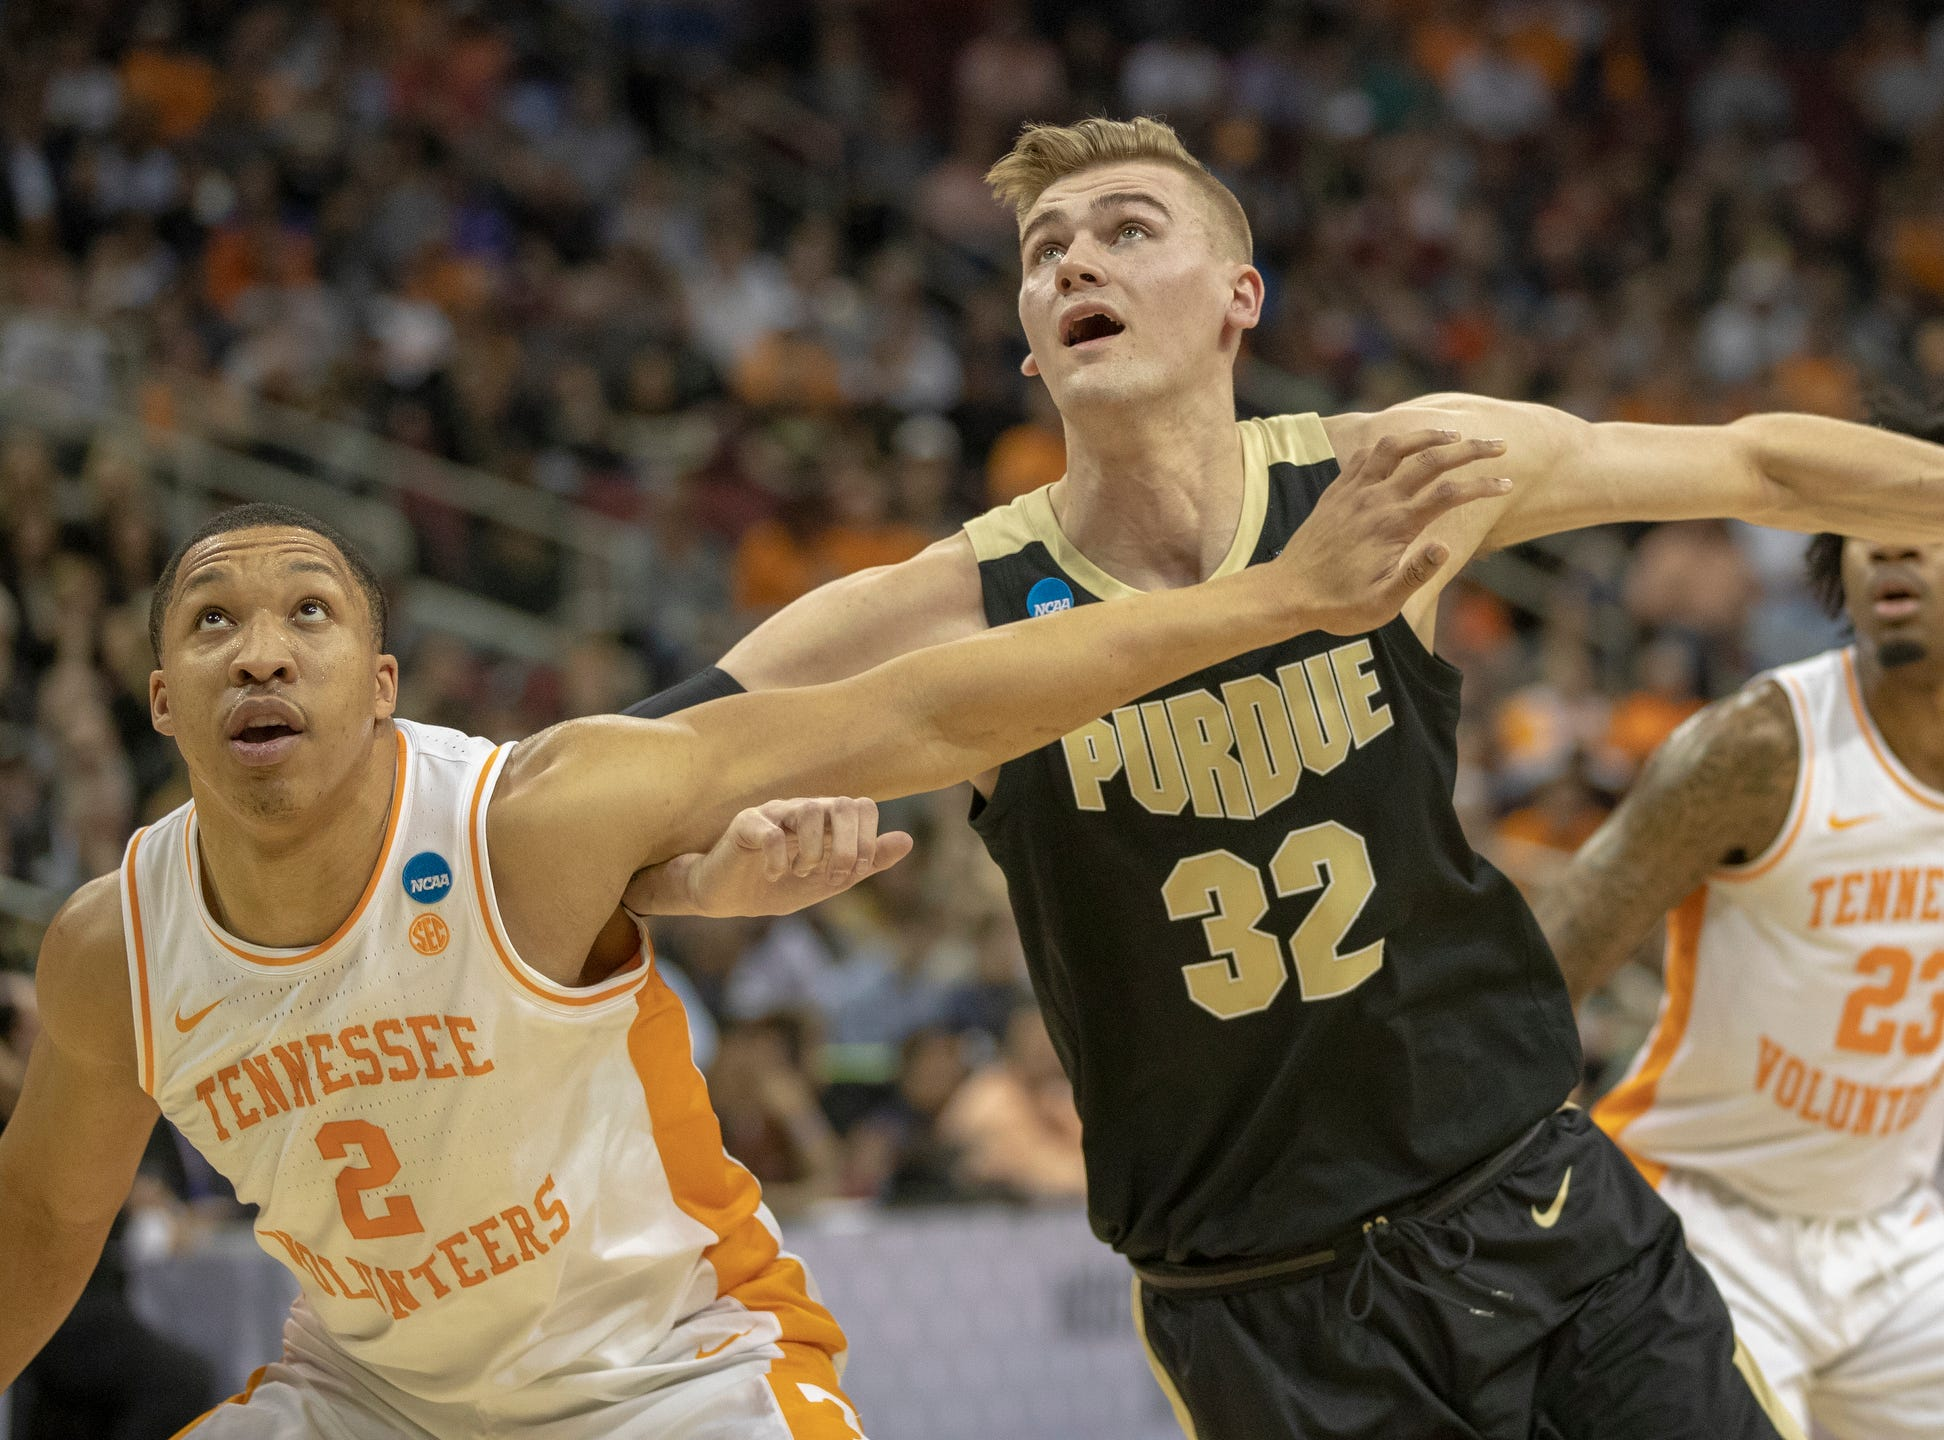 Grant Williams of the Tennessee Volunteers and Matt Haarms of the Purdue Boilermakers hunt for a rebound, NCAA Division 1 Men's Basketball 'Sweet Sixteen' game, KFC Yum Center, Louisville, Thursday, March 28, 2019.